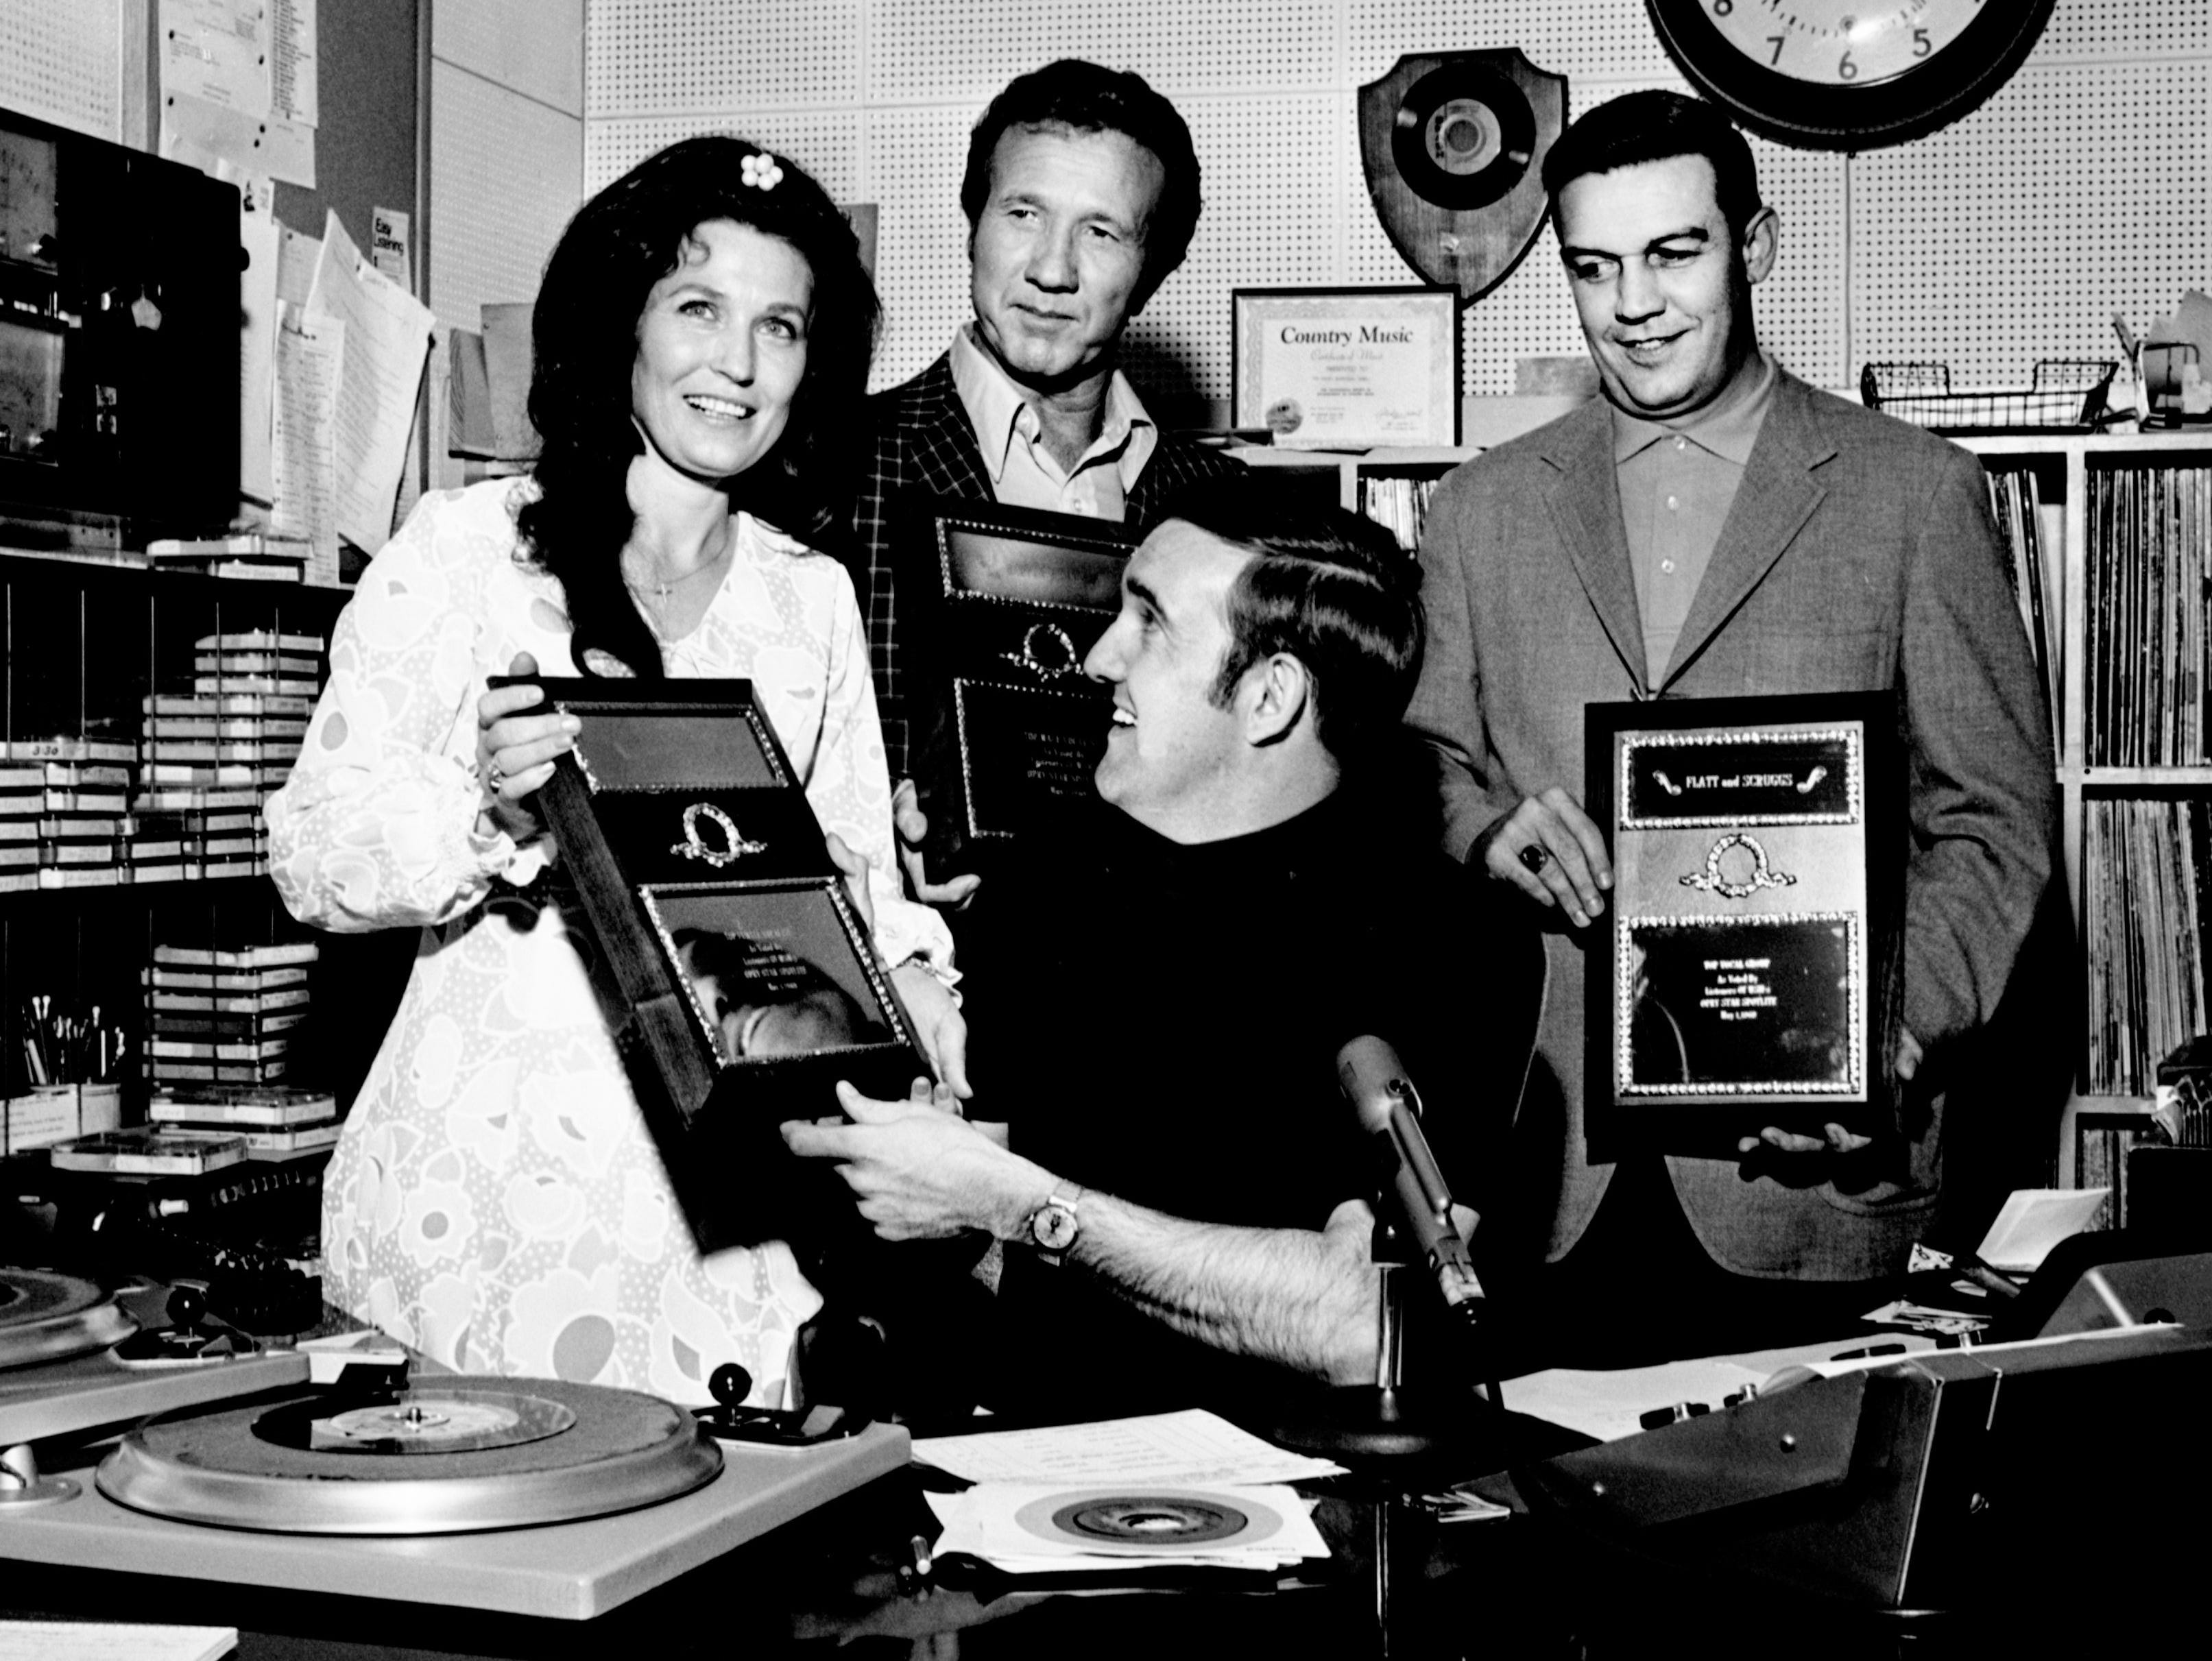 Loretta Lynn, left, and Marty Robbins show off their Top Female and Male vocalist awards as voted by listeners of WSM Opry Star Spotlight for May 1, 1969. Ralph Emery, seated, of WSM, presents the awards at the WSM-TV studio on May 19, 1969, as Bud Wendell, right, holds the Top Vocal Group award won by Flatt and Scruggs.